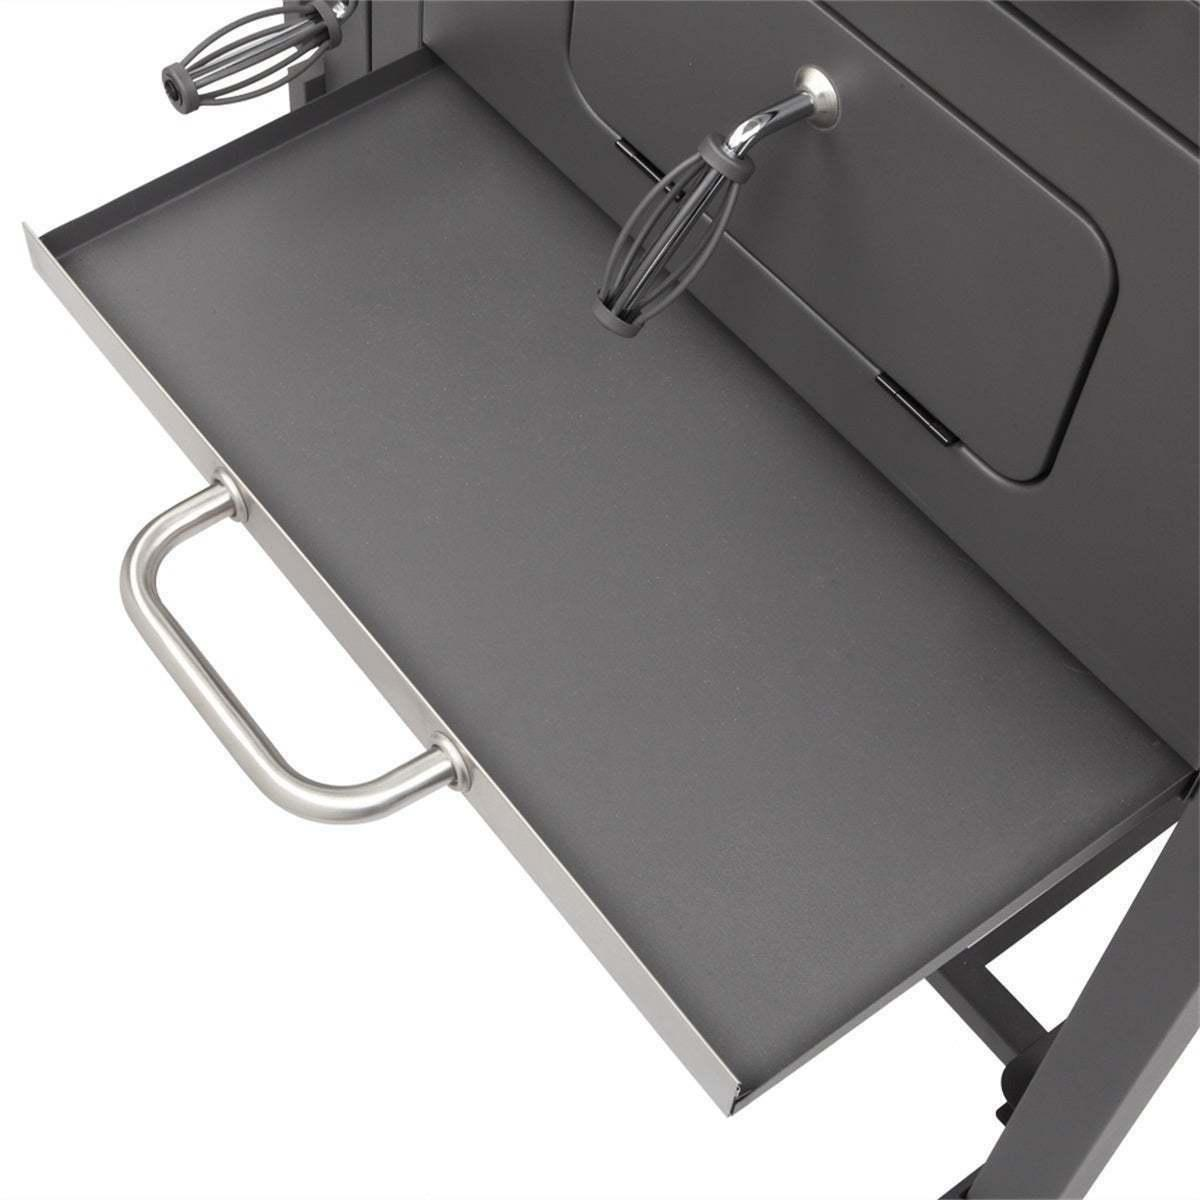 Square Charcoal Oven Plastic